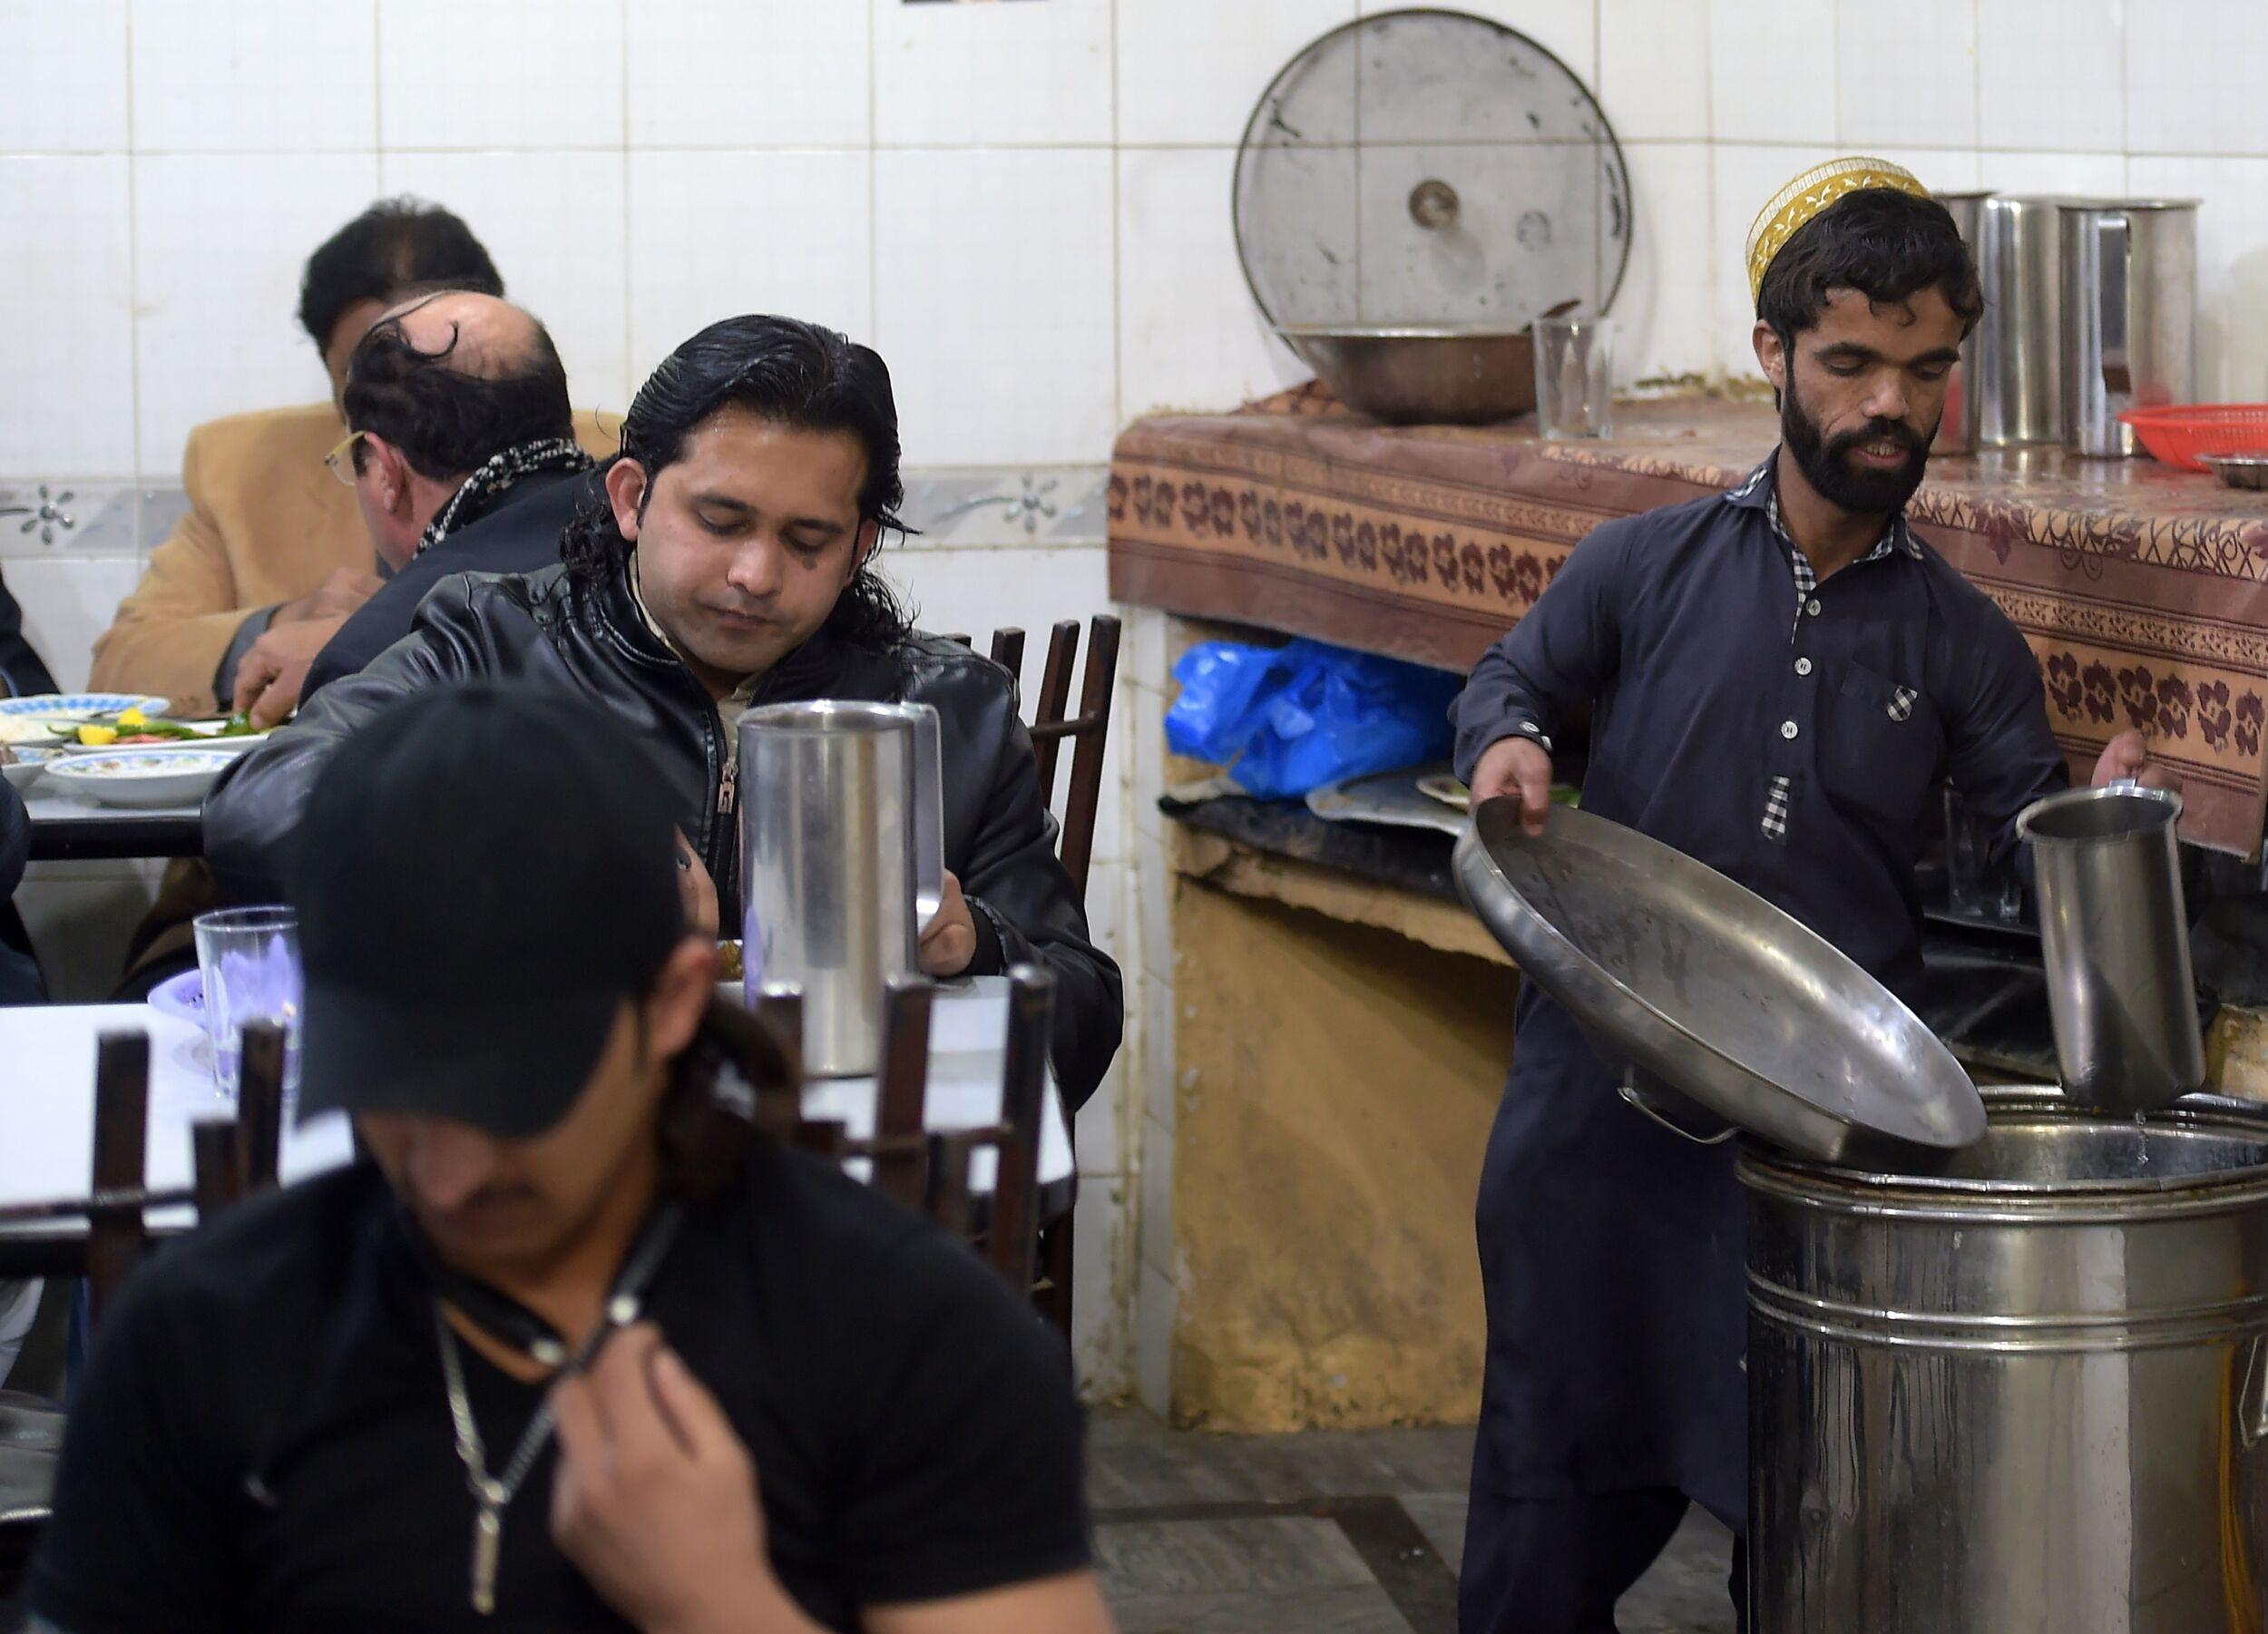 In this picture taken on February 22, 2019, Pakistani waiter Rozi Khan, 25, who resembles US actor Peter Dinklage, working at Dilbar Hotel in Rawalpindi. - Rozi Khan had never heard of the Game of Thrones -- or its hugely popular character Tyrion Lannister -- until his striking resemblance to the dwarf anti-hero got heads turning at home. (Photo by AAMIR QURESHI / AFP) / To go with PAKISTAN-LIFESTYLE-TELEVISION-ENTERTAINMENT        (Photo credit should read AAMIR QURESHI/AFP/Getty Images)